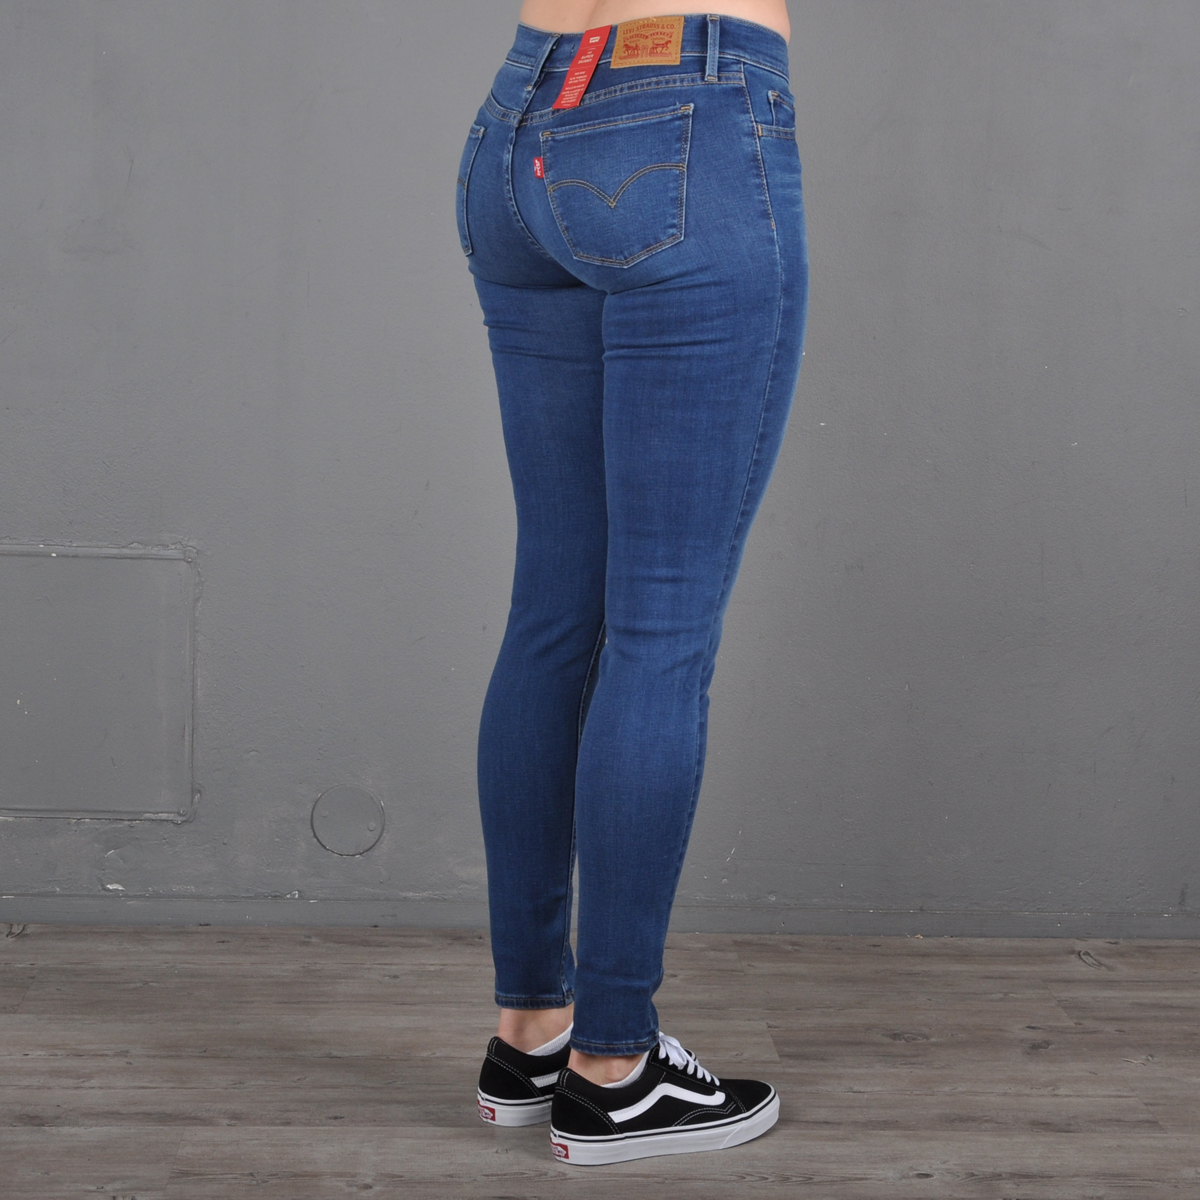 710 Super Skinny Jeans Have To Buy T Levis Secluded Echo 17778 0034 Size 29